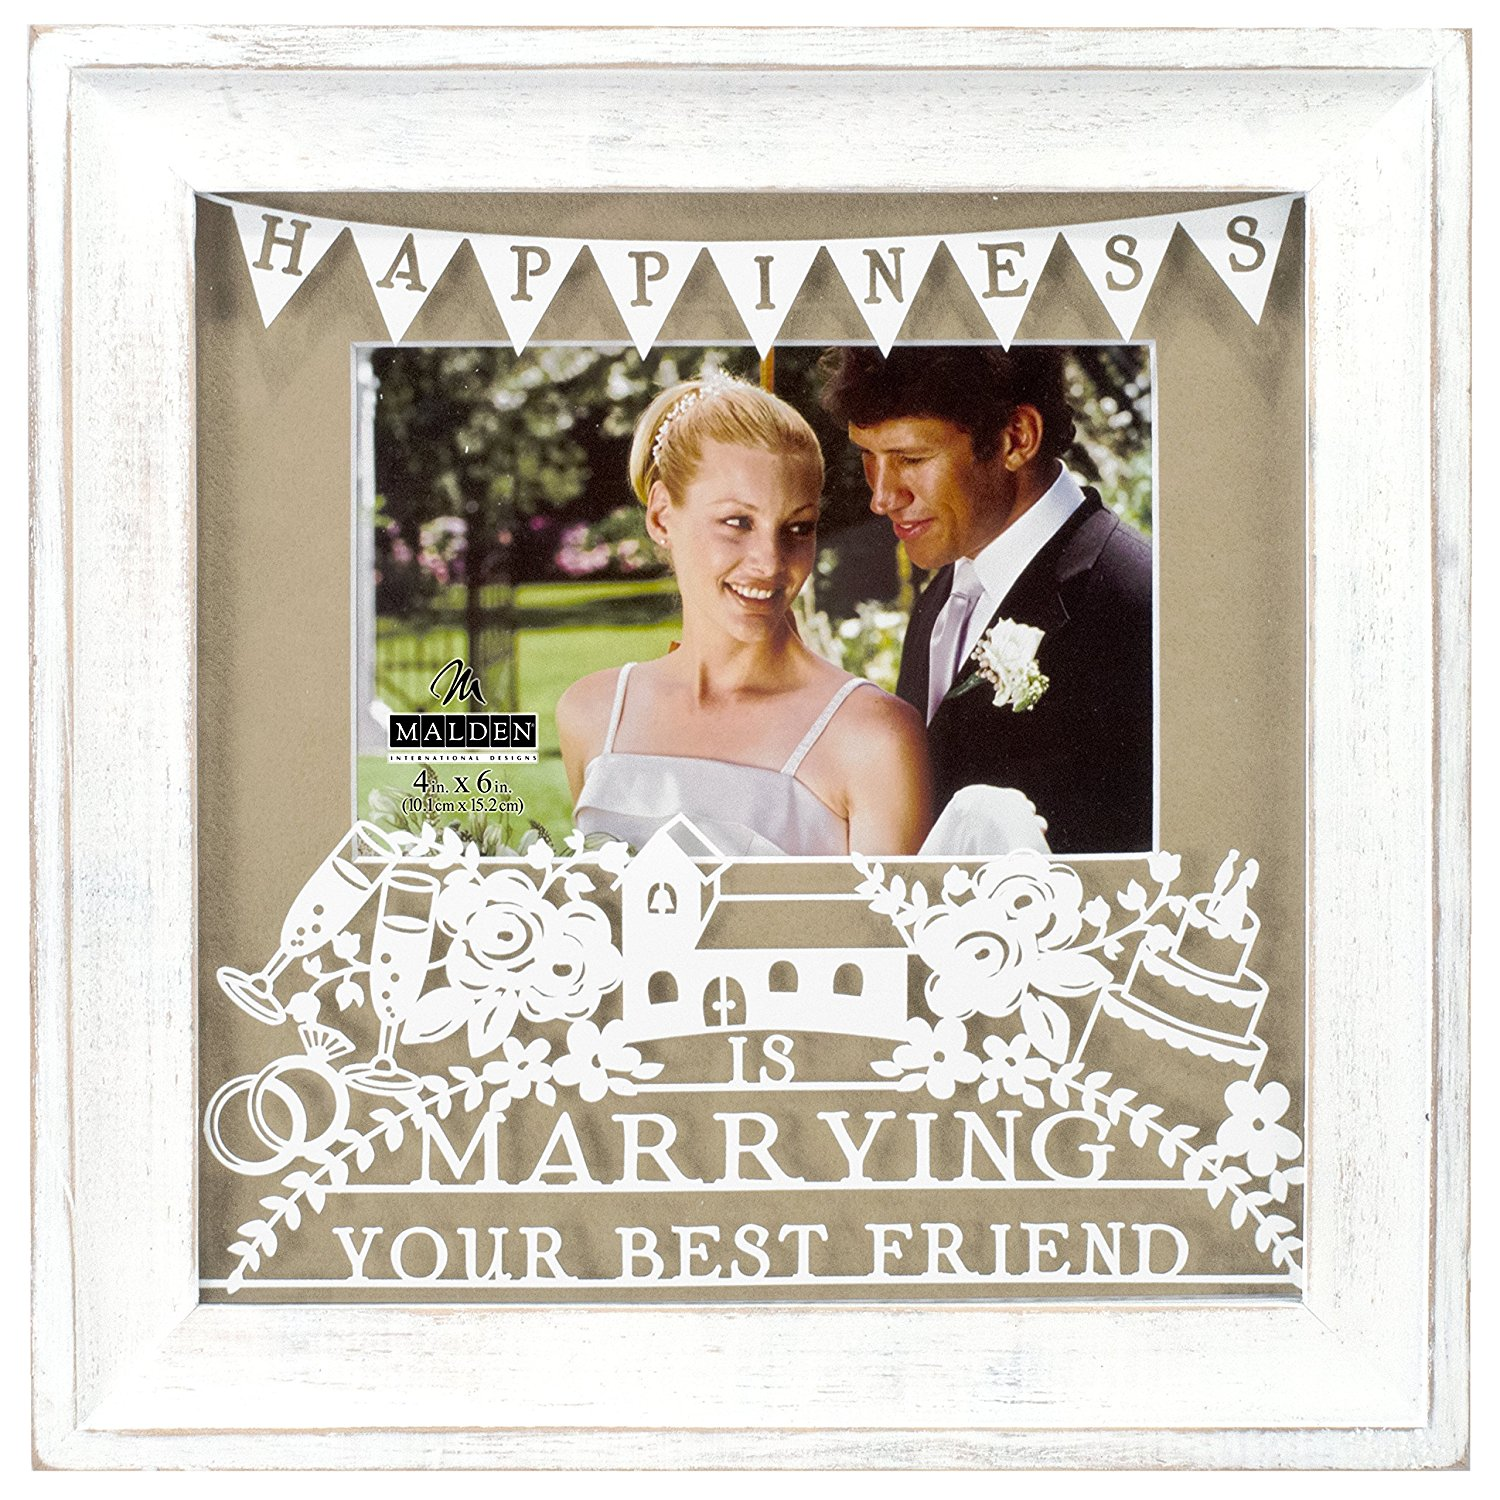 """Malden International Designs White Distressed Wood With Tan Mat And Silkscreened Happiness is Marrying Your Best Friend on The Glass Picture Frame, 4 X 6"""""""